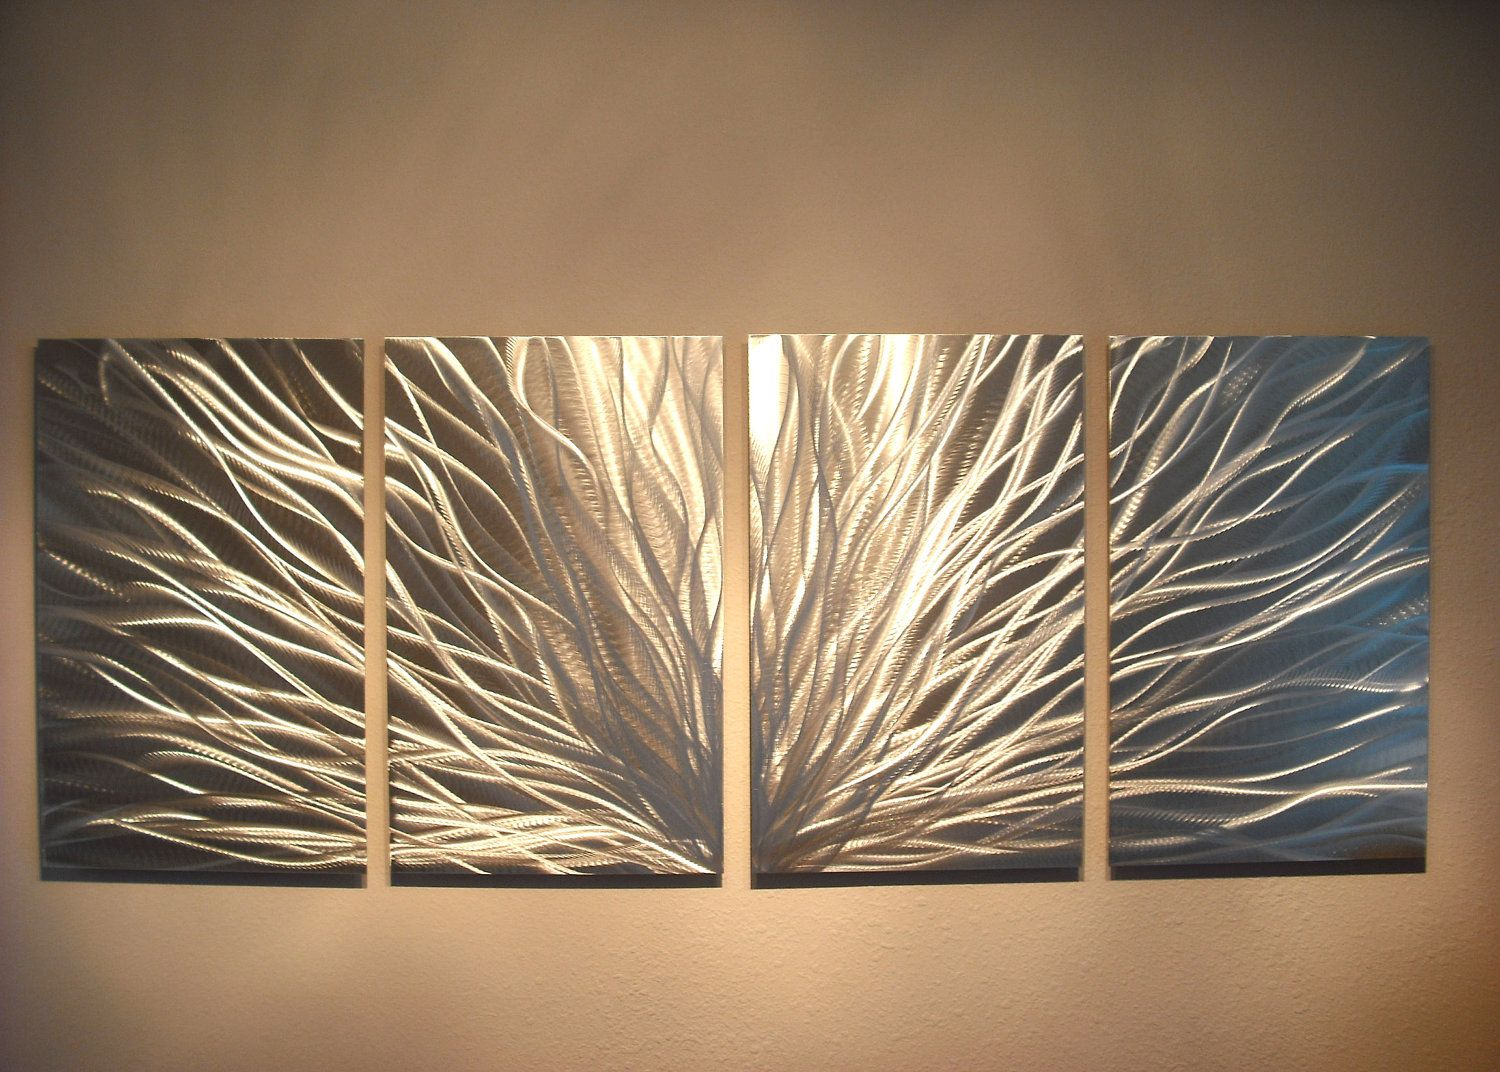 Metal Wall Hangings metal wall art decor abstract aluminum contemporary modern